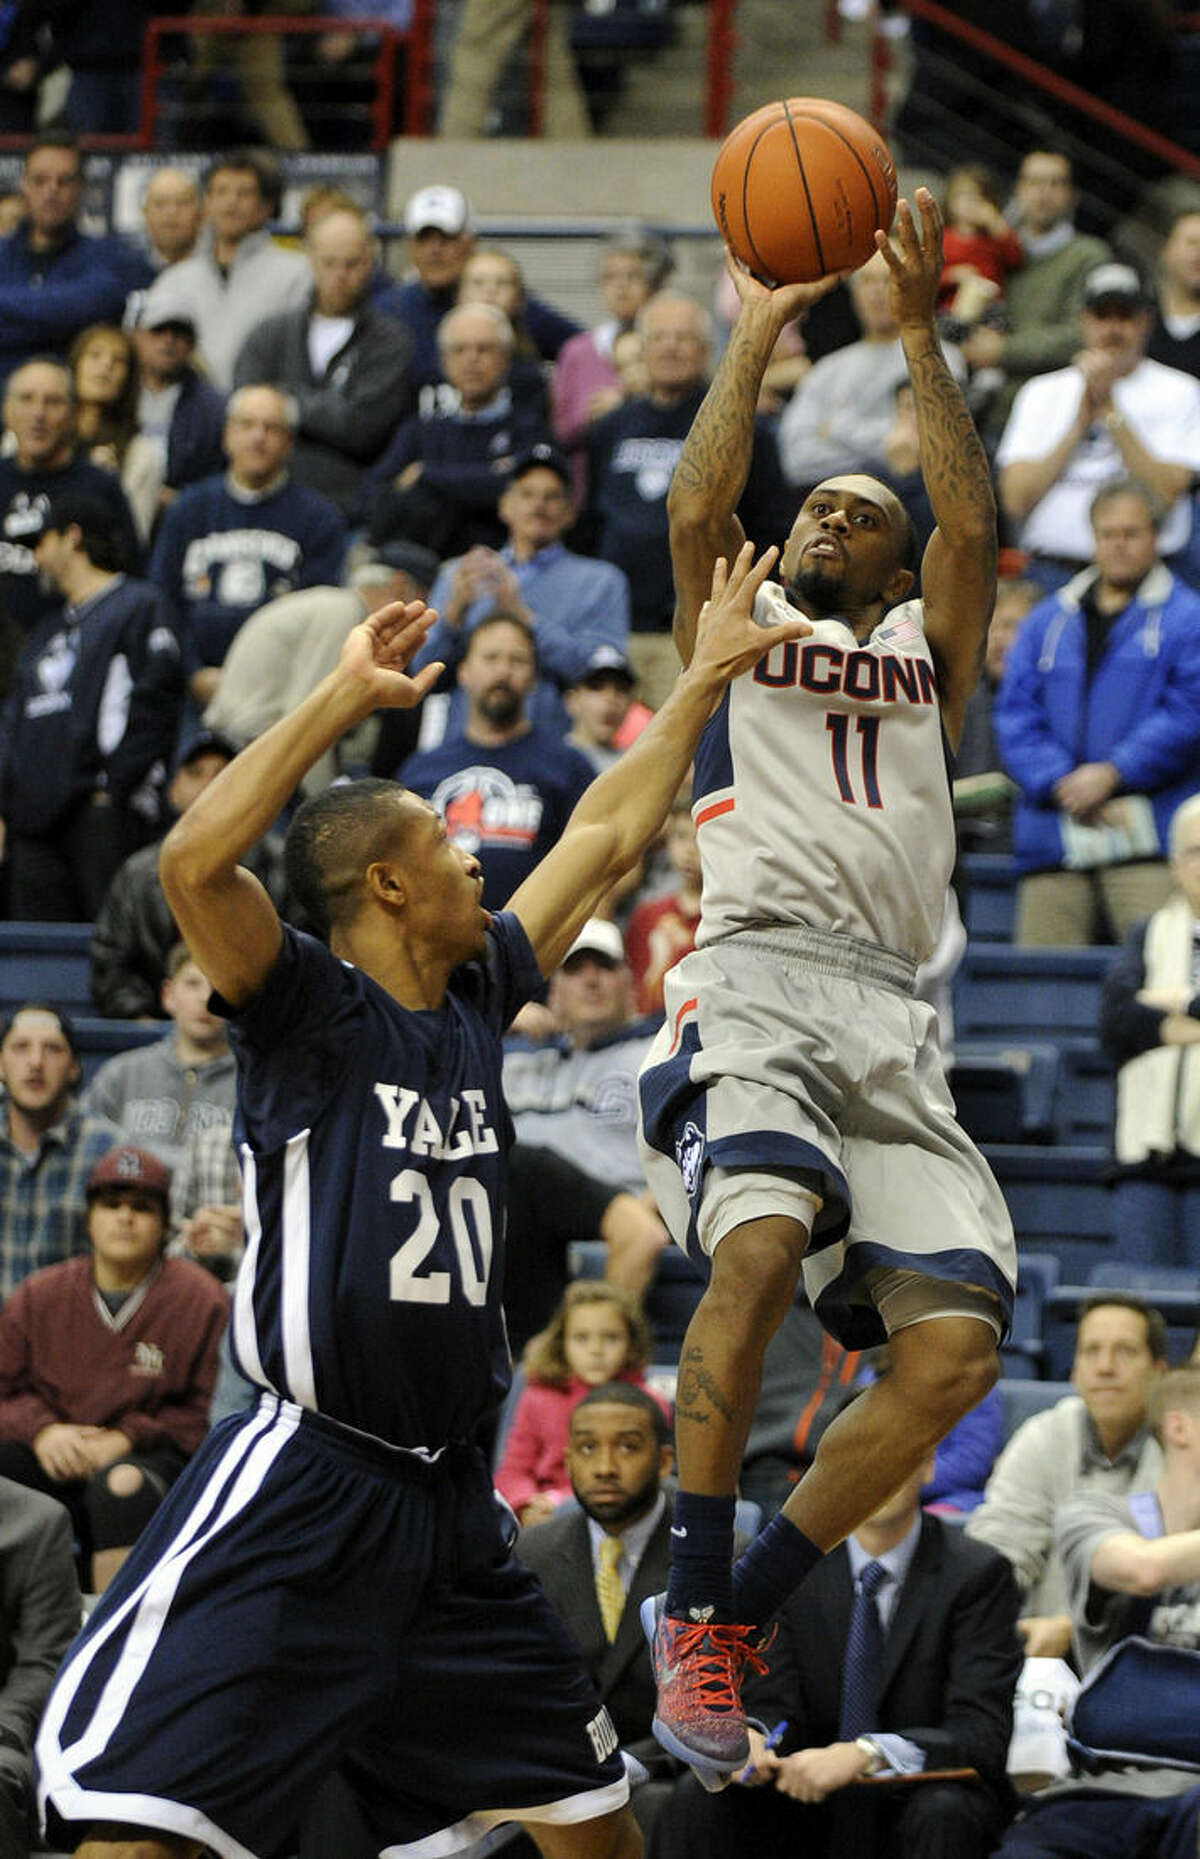 Connecticut's Ryan Boatright (11) shoots over Yale's Javier Duren (20) during the first half of an NCAA college basketball game in Storrs, Conn., on Sunday, Dec. 5, 2014. (AP Photo/Fred Beckham)